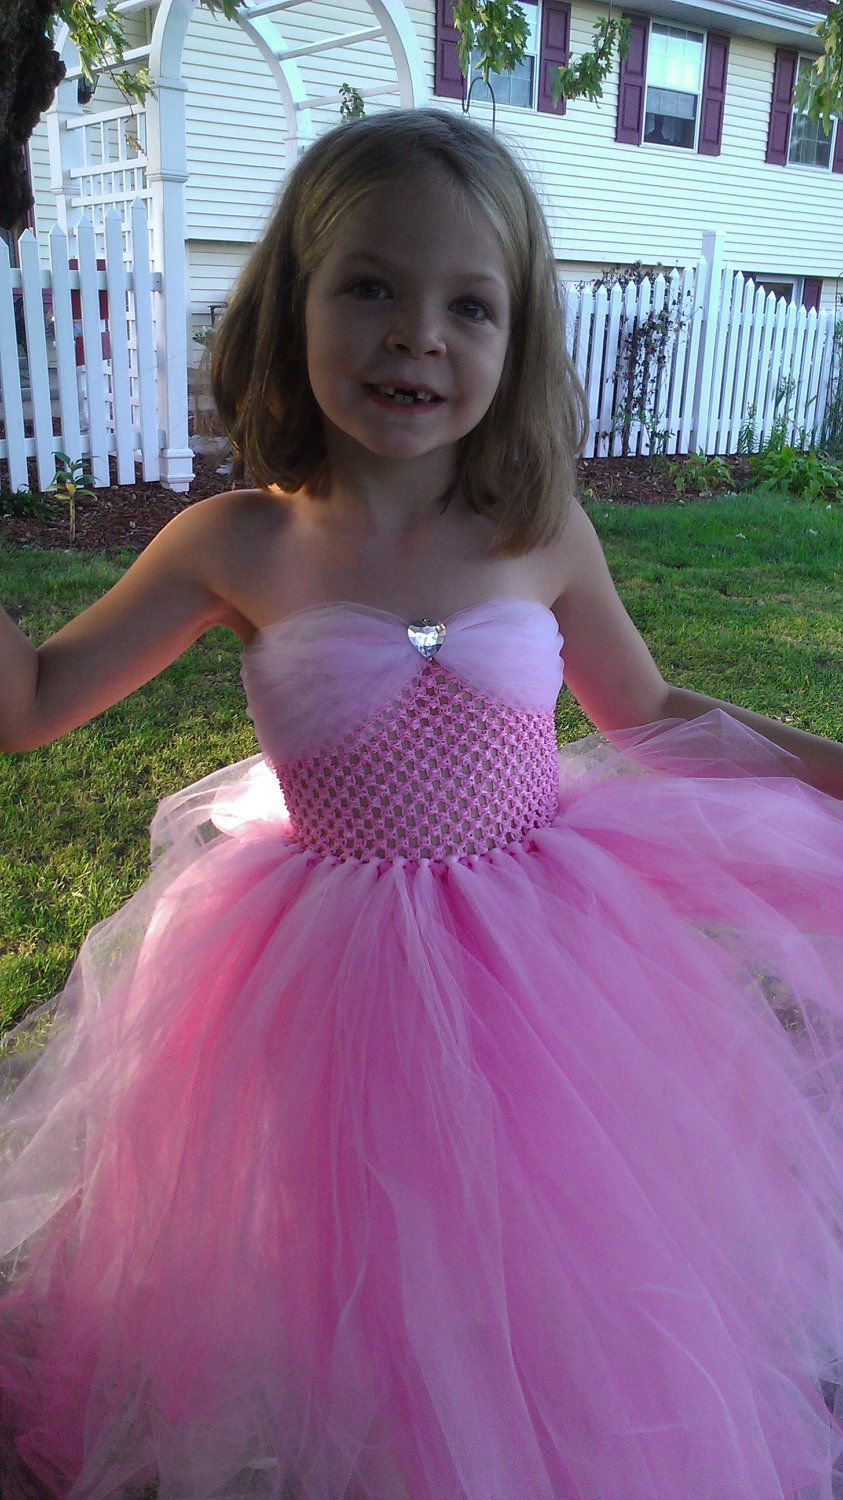 Sleeping+Beauty+tutu+dress+by+tiger0459+on+Etsy,+$40.00   Lucy ...